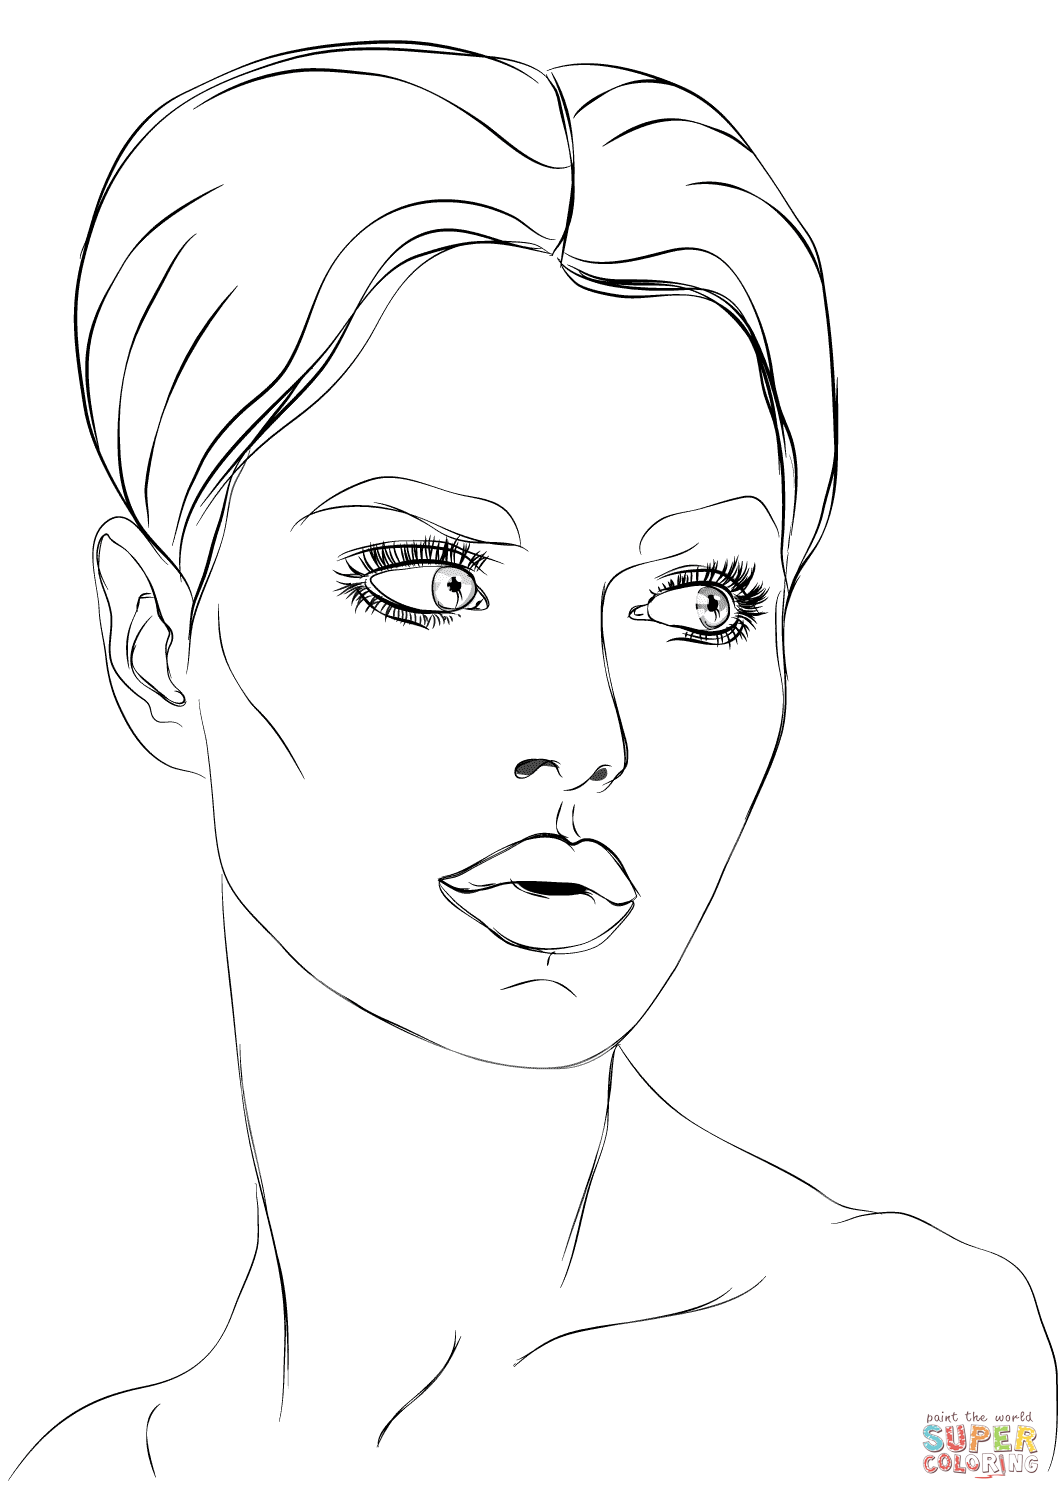 coloring pages for makeup - photo#37